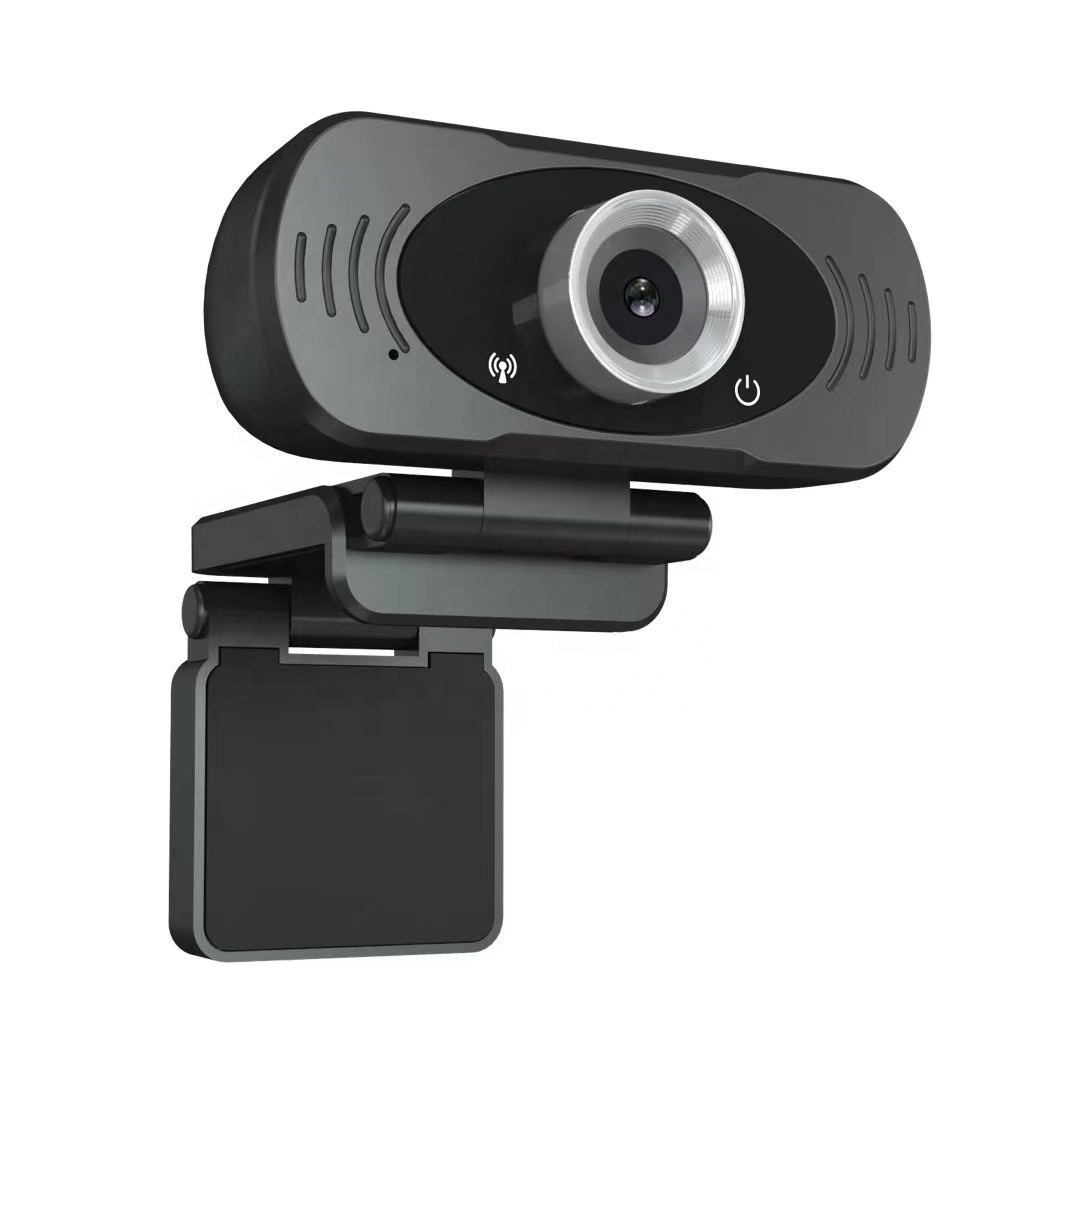 Conferencing Gaming Cameras For Computers Full Hd Webcam Computer Camera